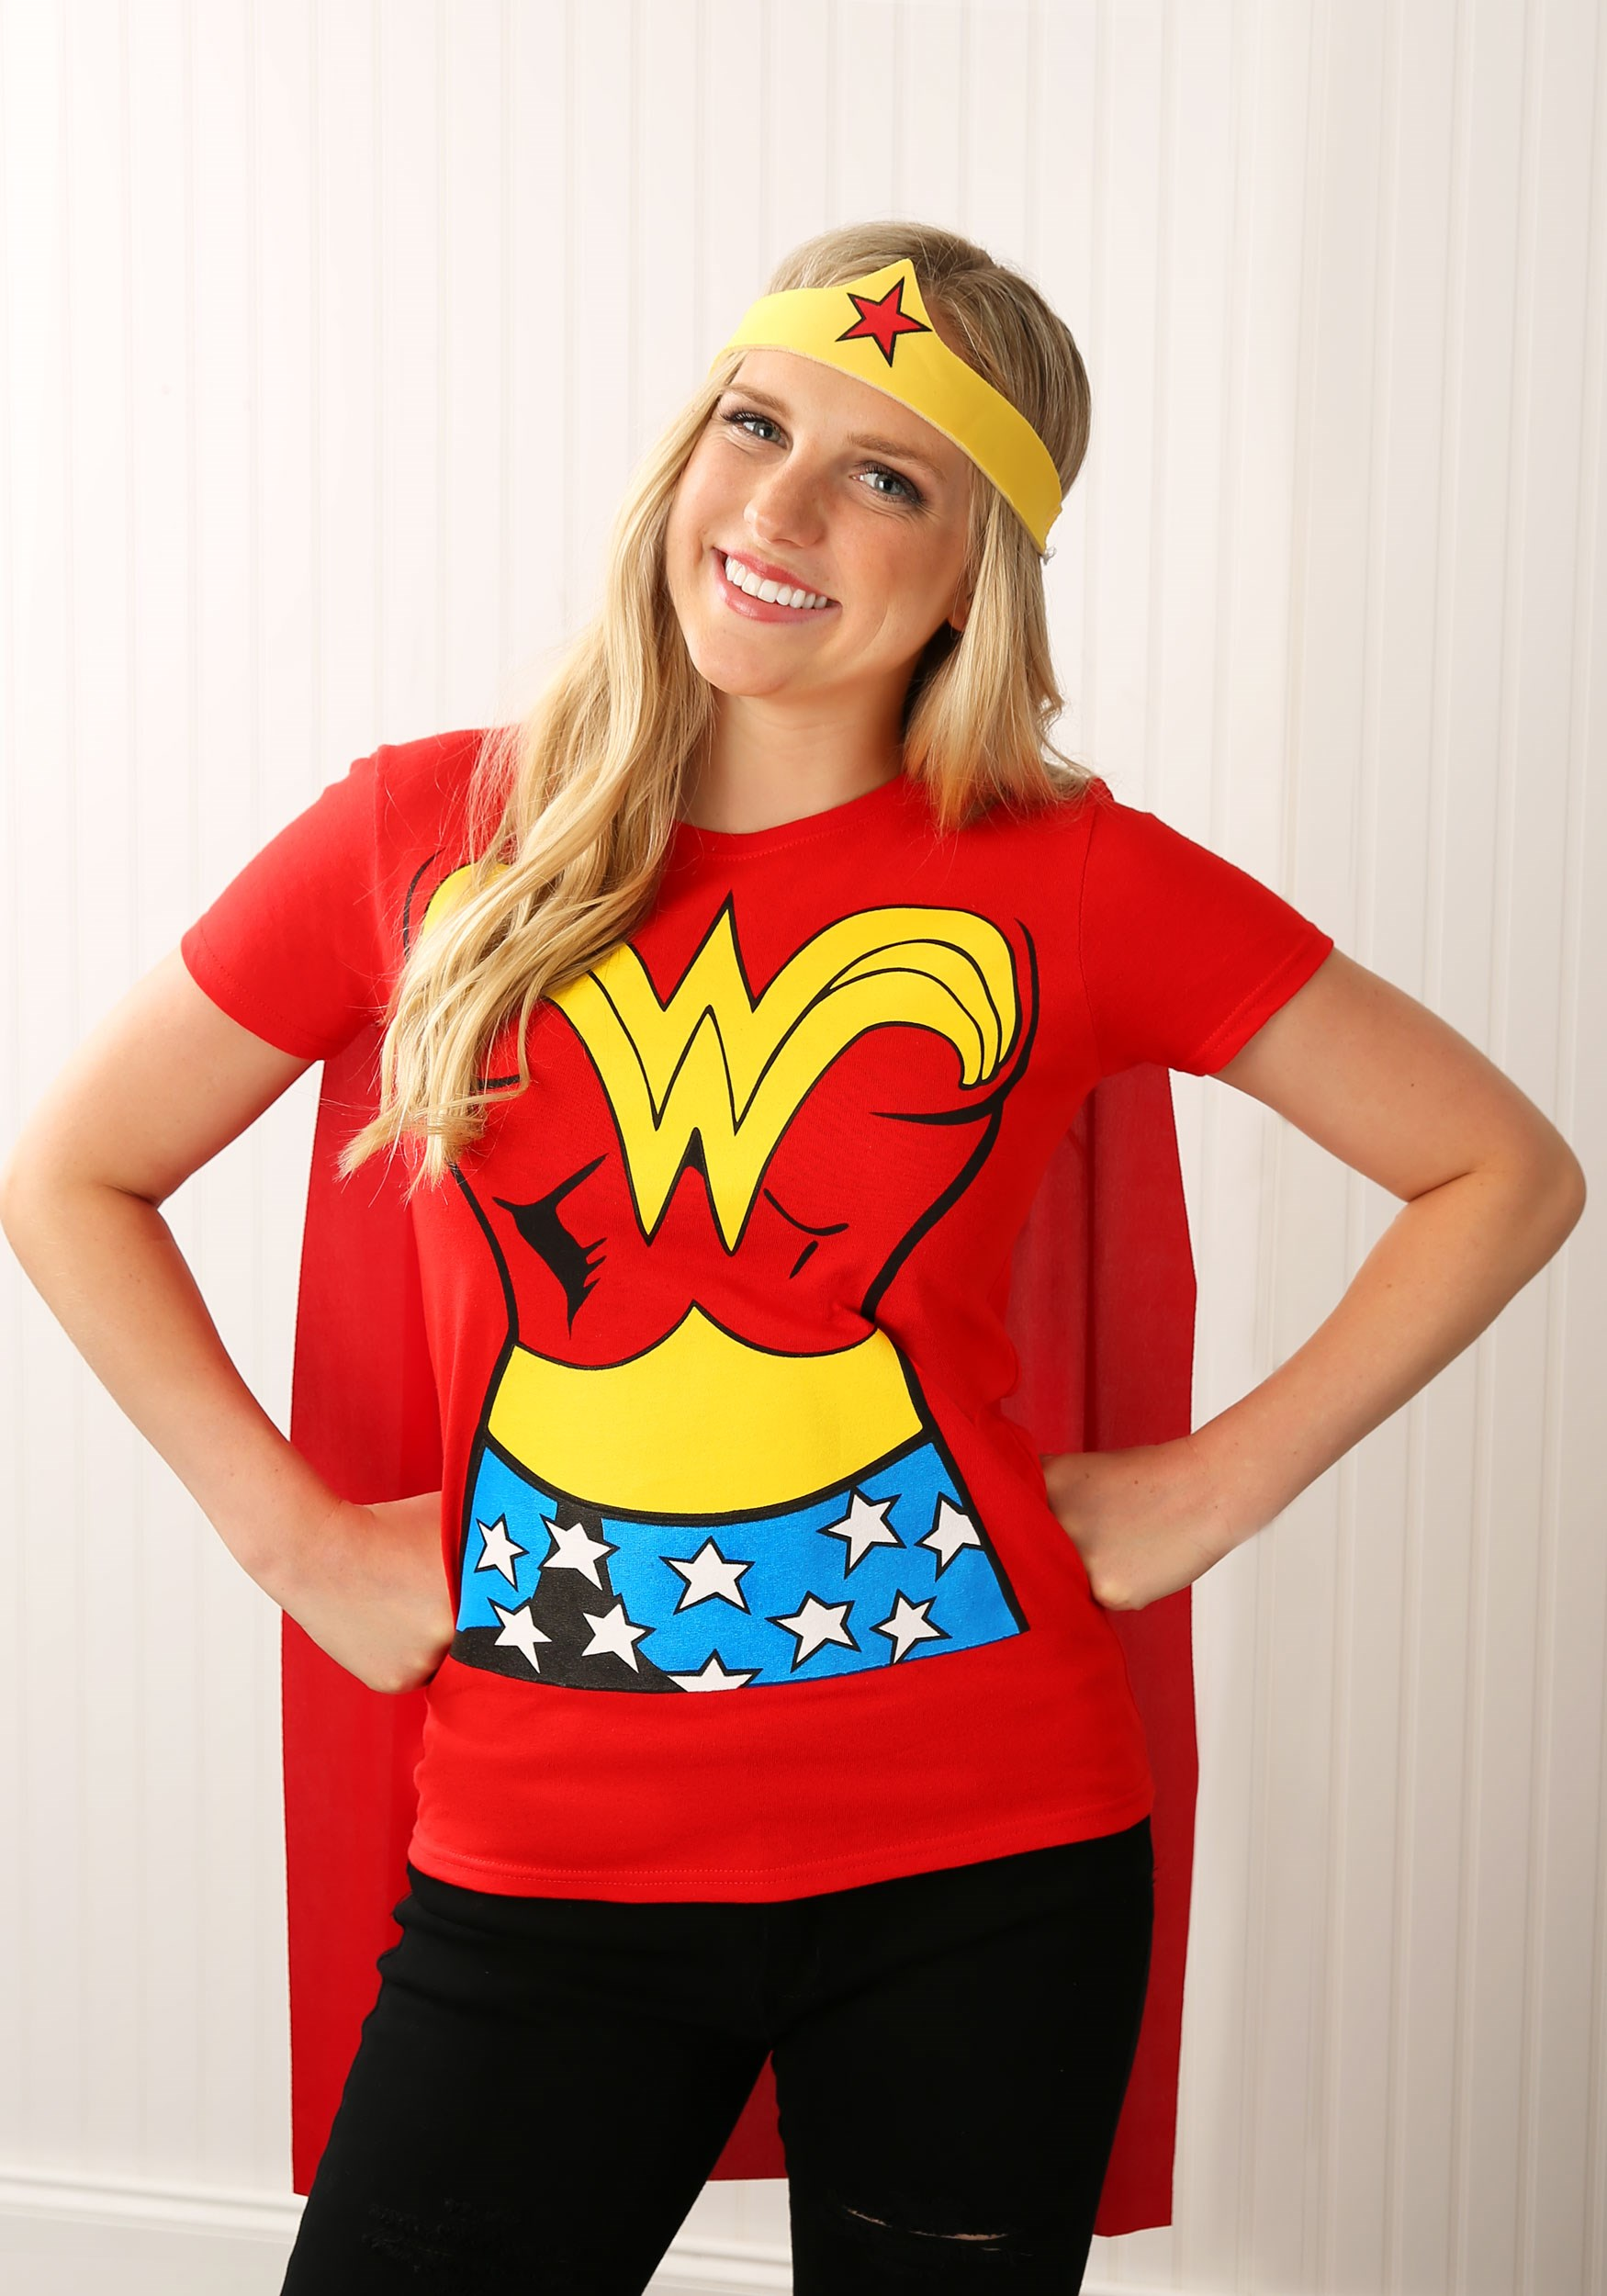 wonder woman t shirt costume - Modest Womens Halloween Costumes